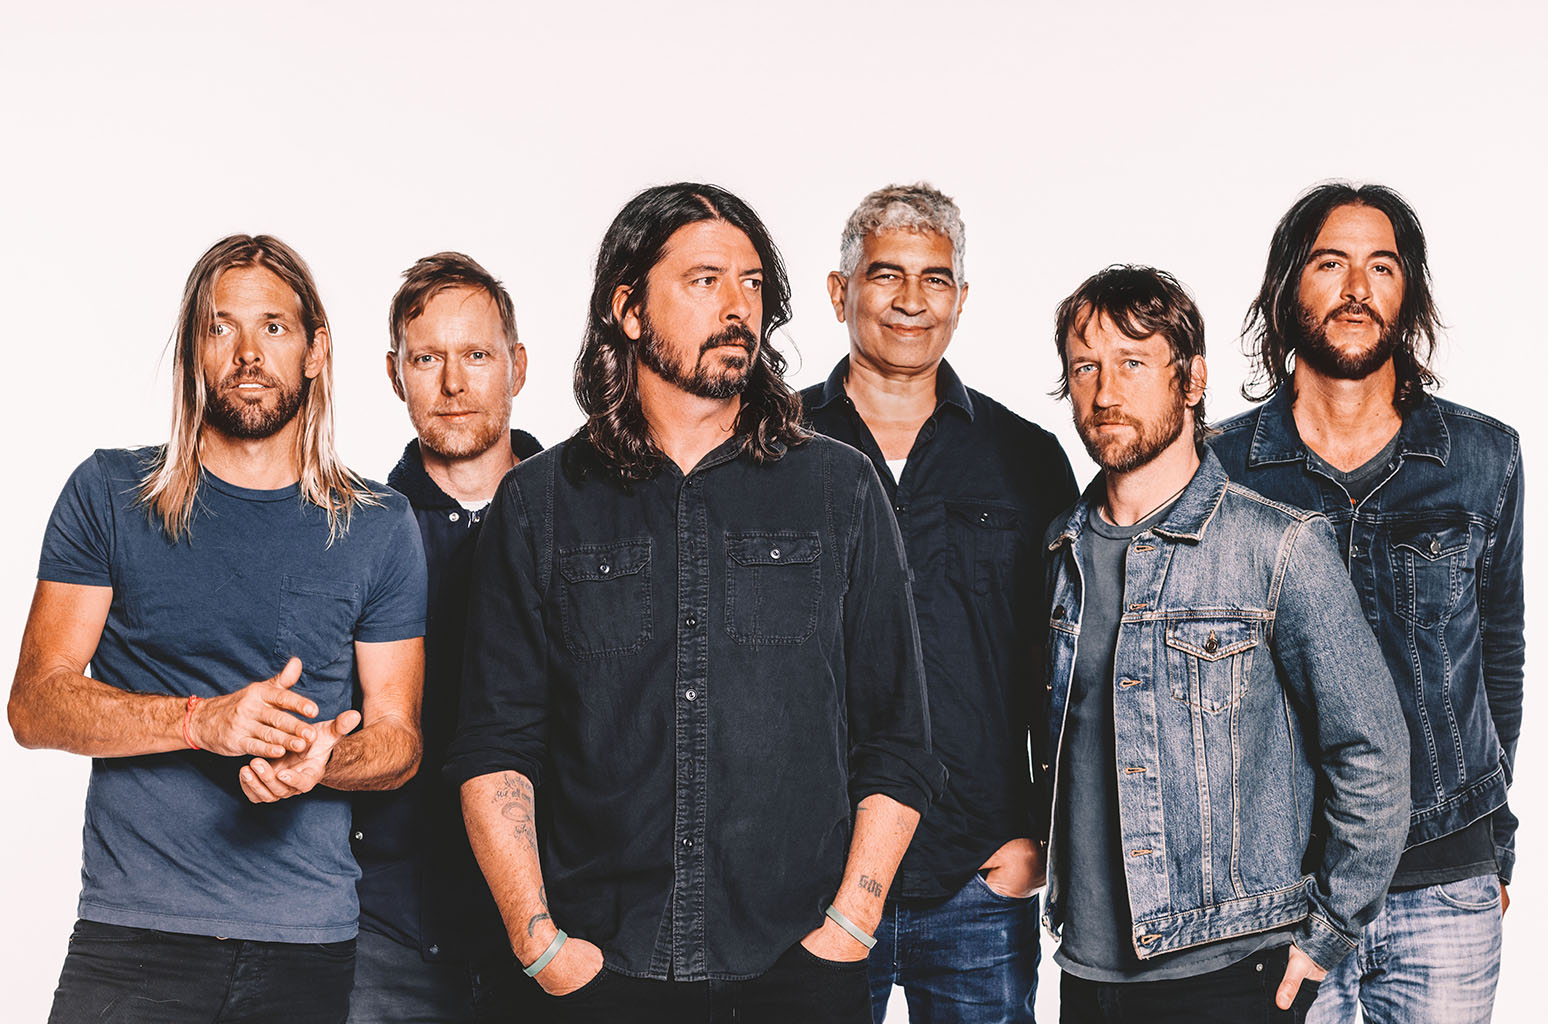 FOO FIGHTERS NEW ALBUM CONCRETE AND GOLD CEMENTS ITSELF AT THE TOP OF THIS WEEK'S ARIA ALBUM CHART